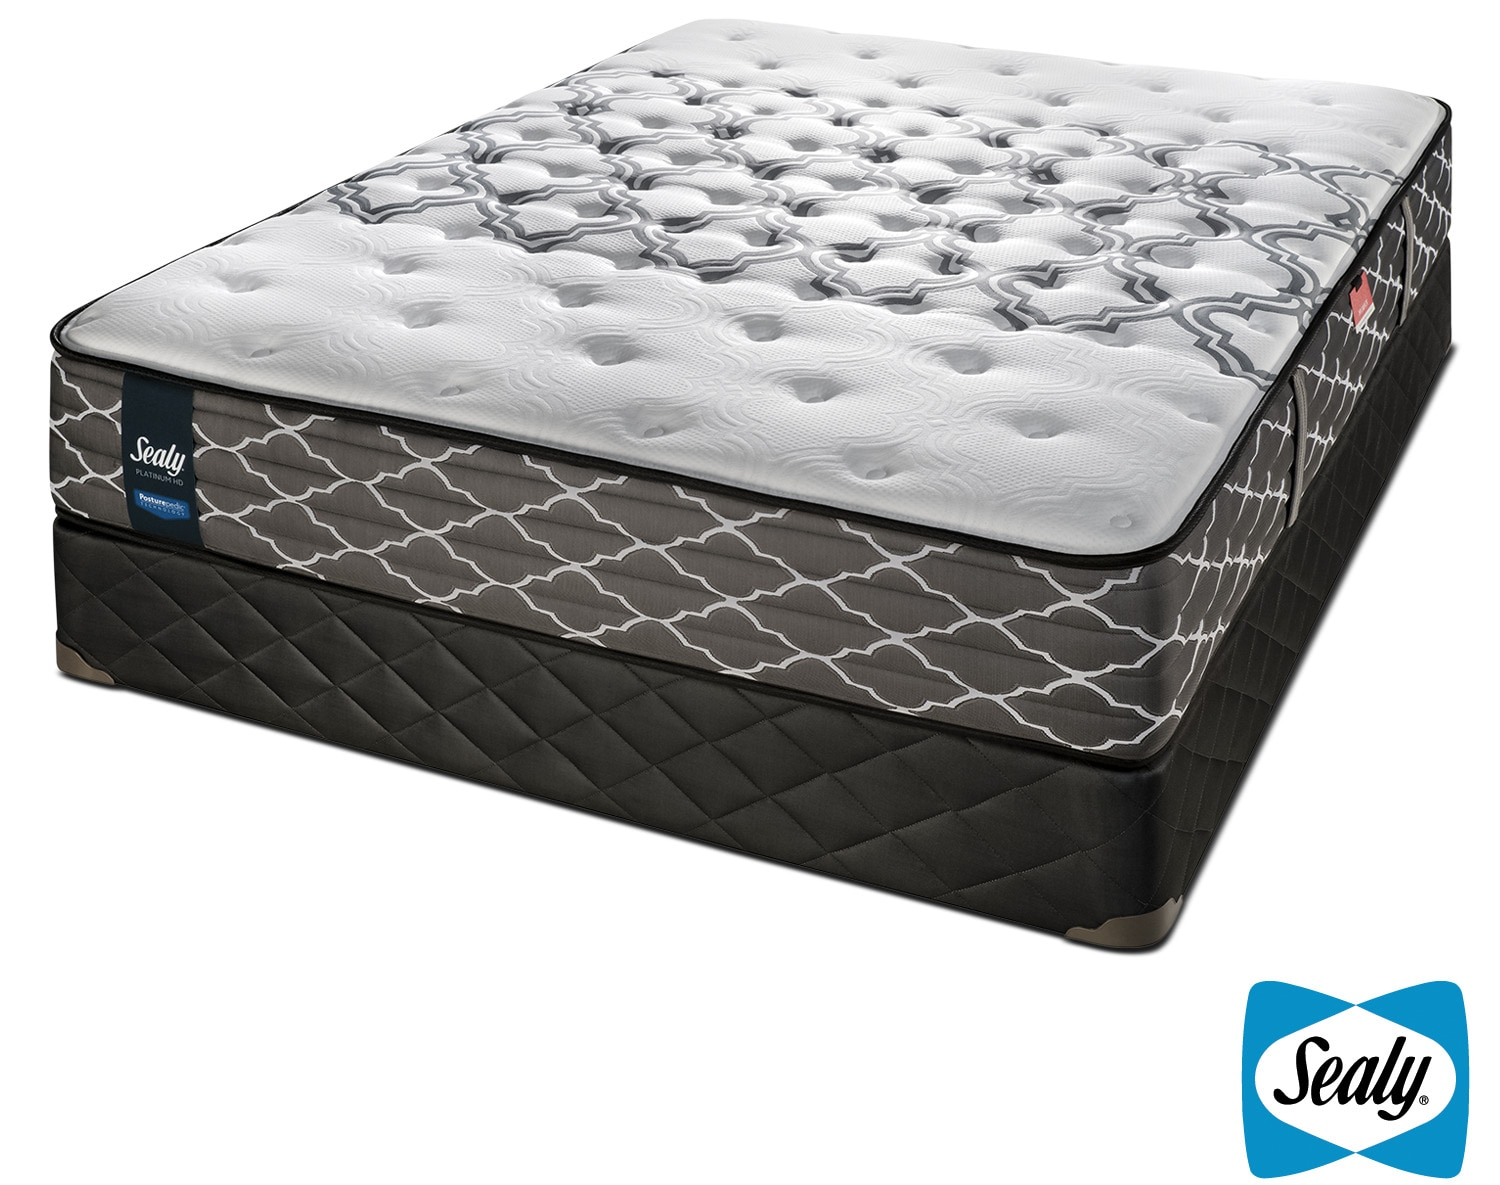 Sealy Late Night Hybrid Extra Firm Twin Mattress and Boxspring Set